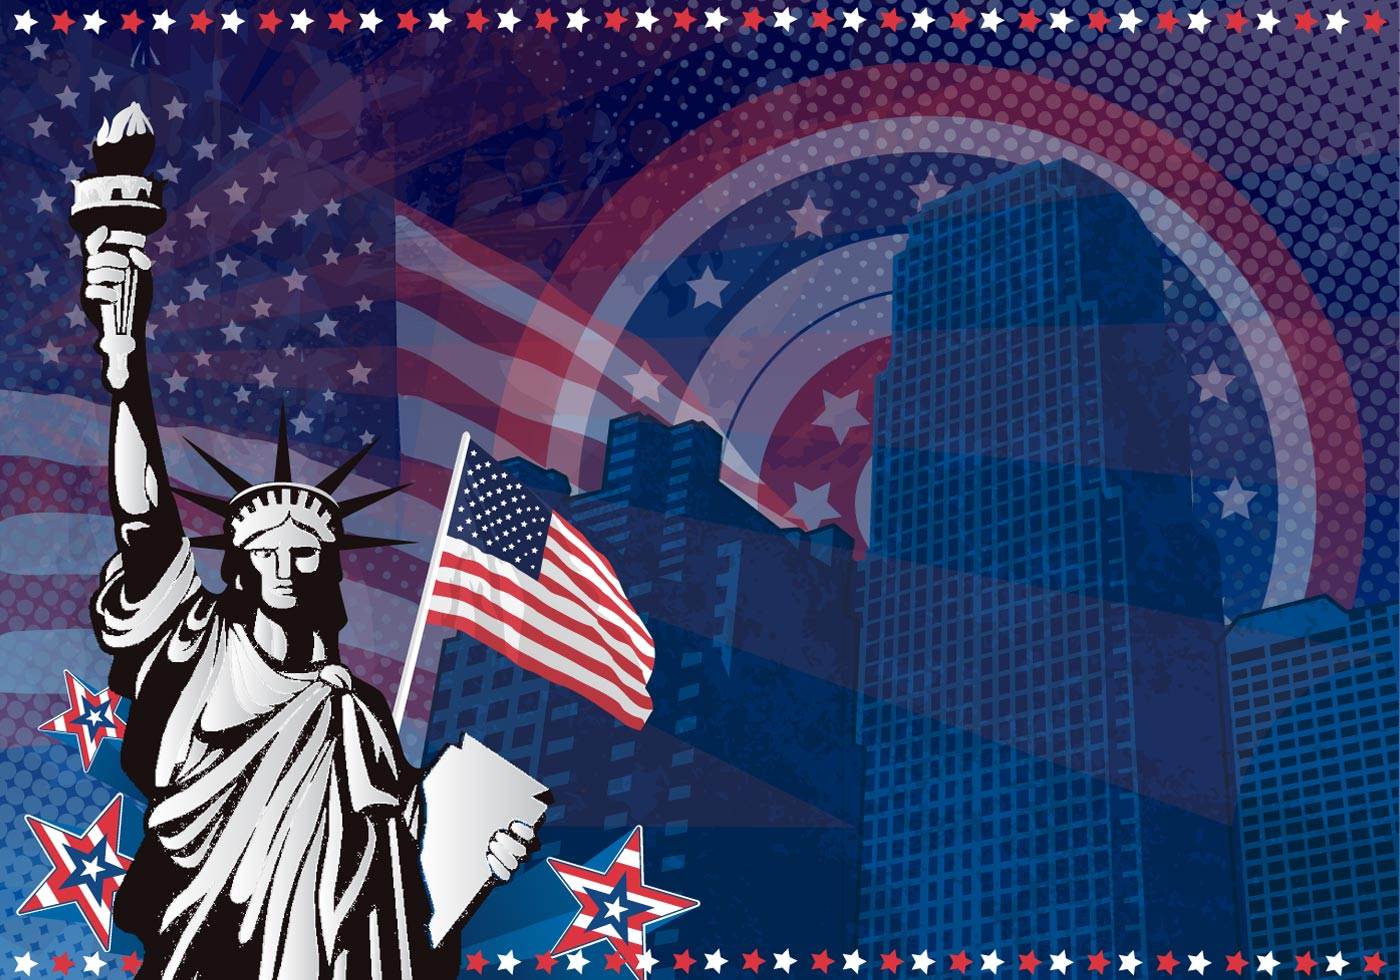 American Background - Download Free Vector Art, Stock ...